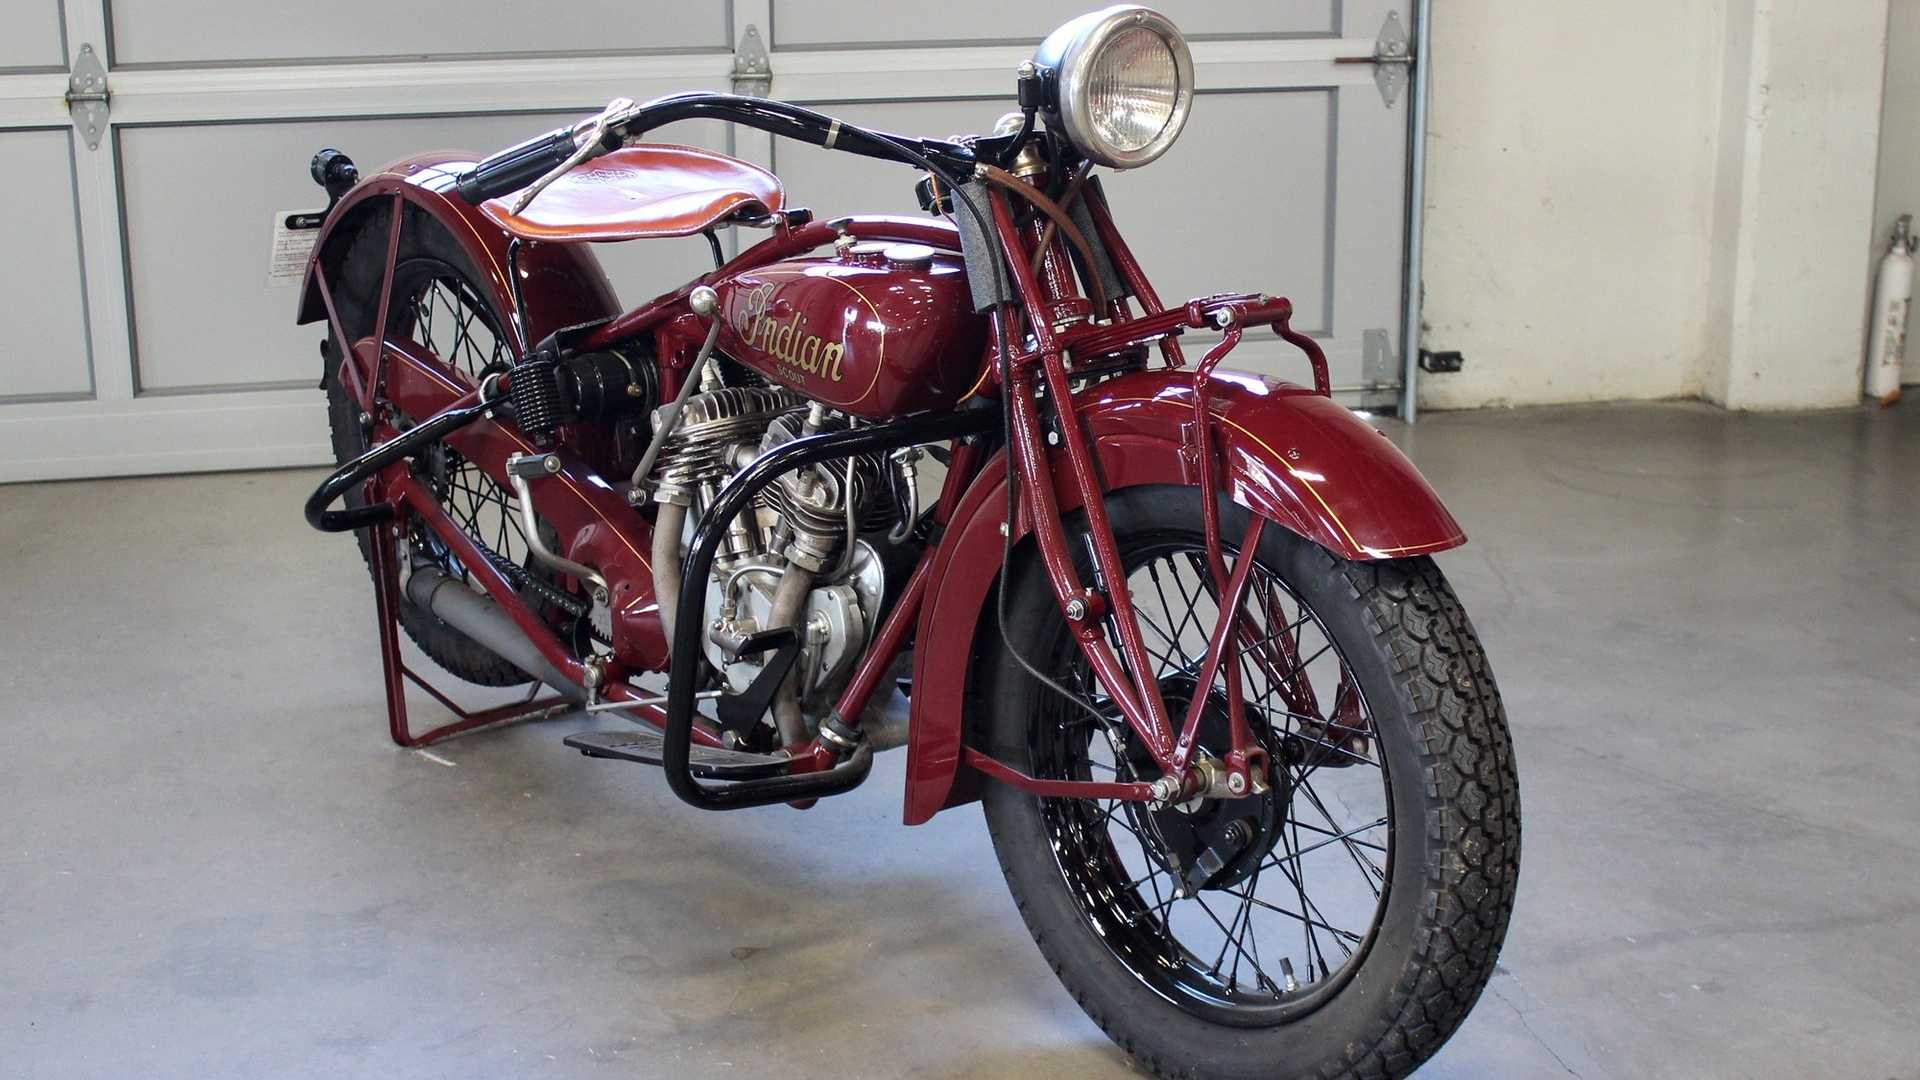 For Sale A Fully Restored 1929 Indian 101 Scout With Provenance